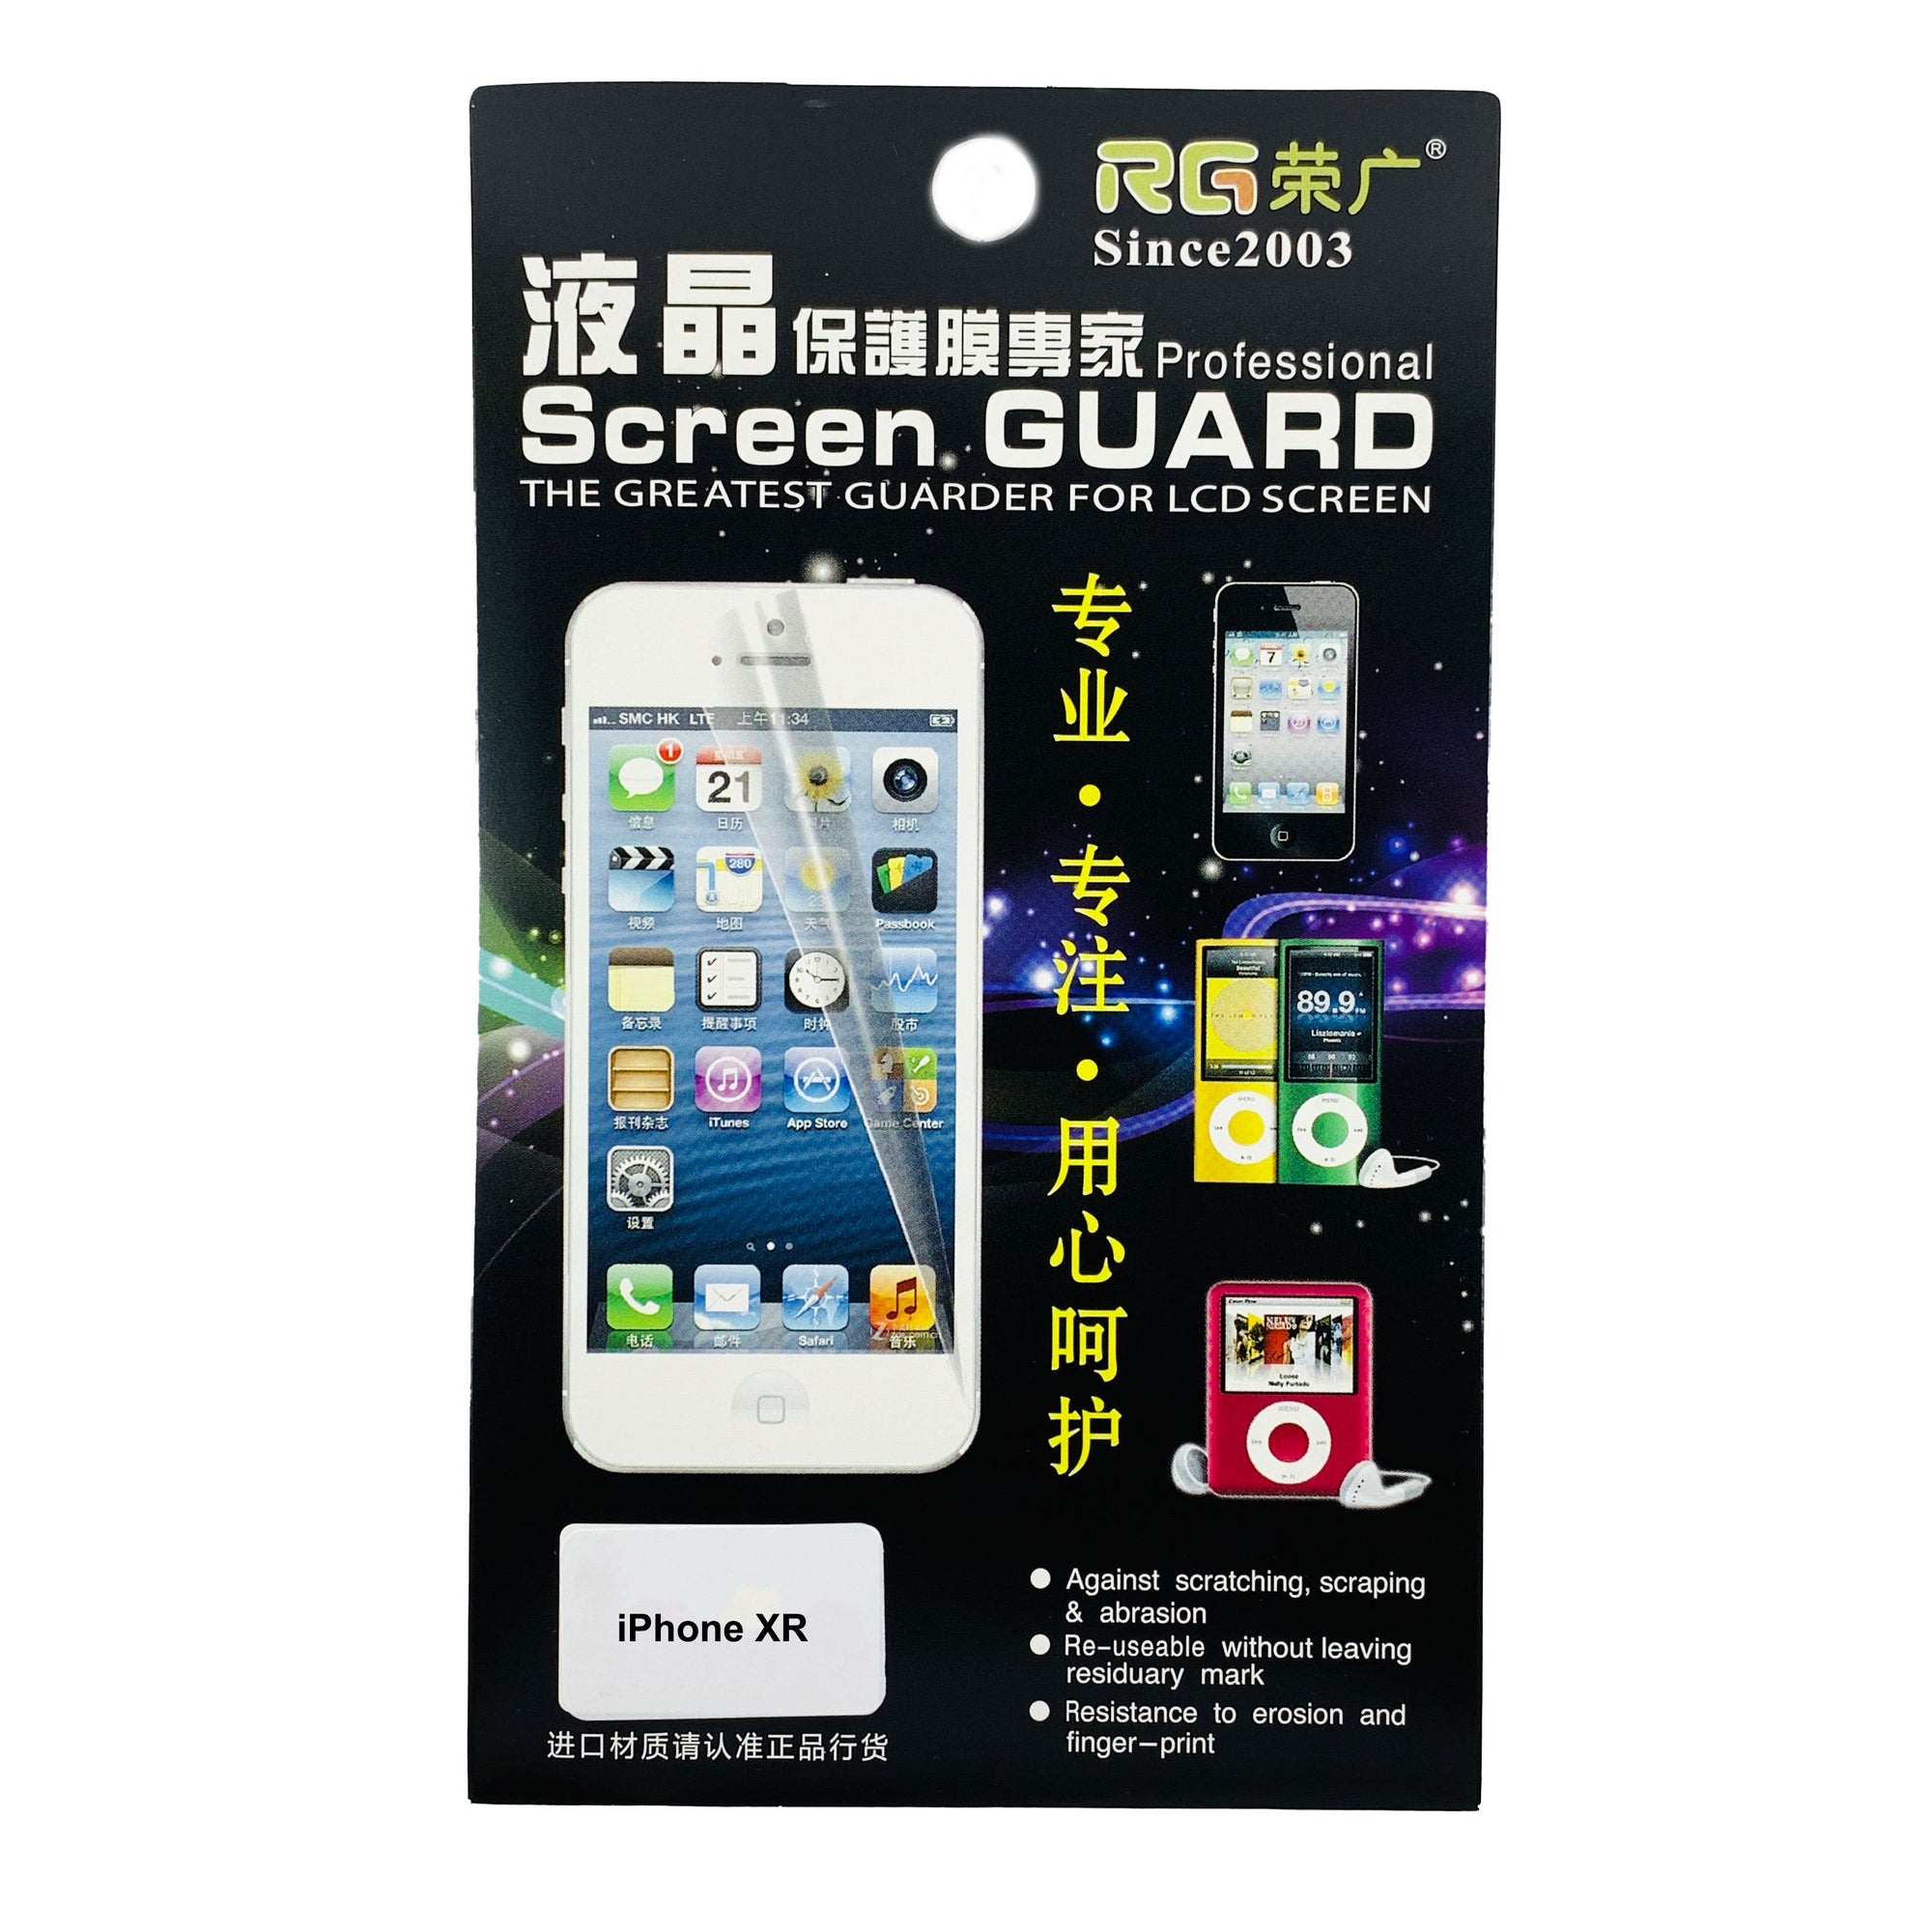 RG Professional Soft Film Screen Protector for iPhone XR (Clear) Front and Rear